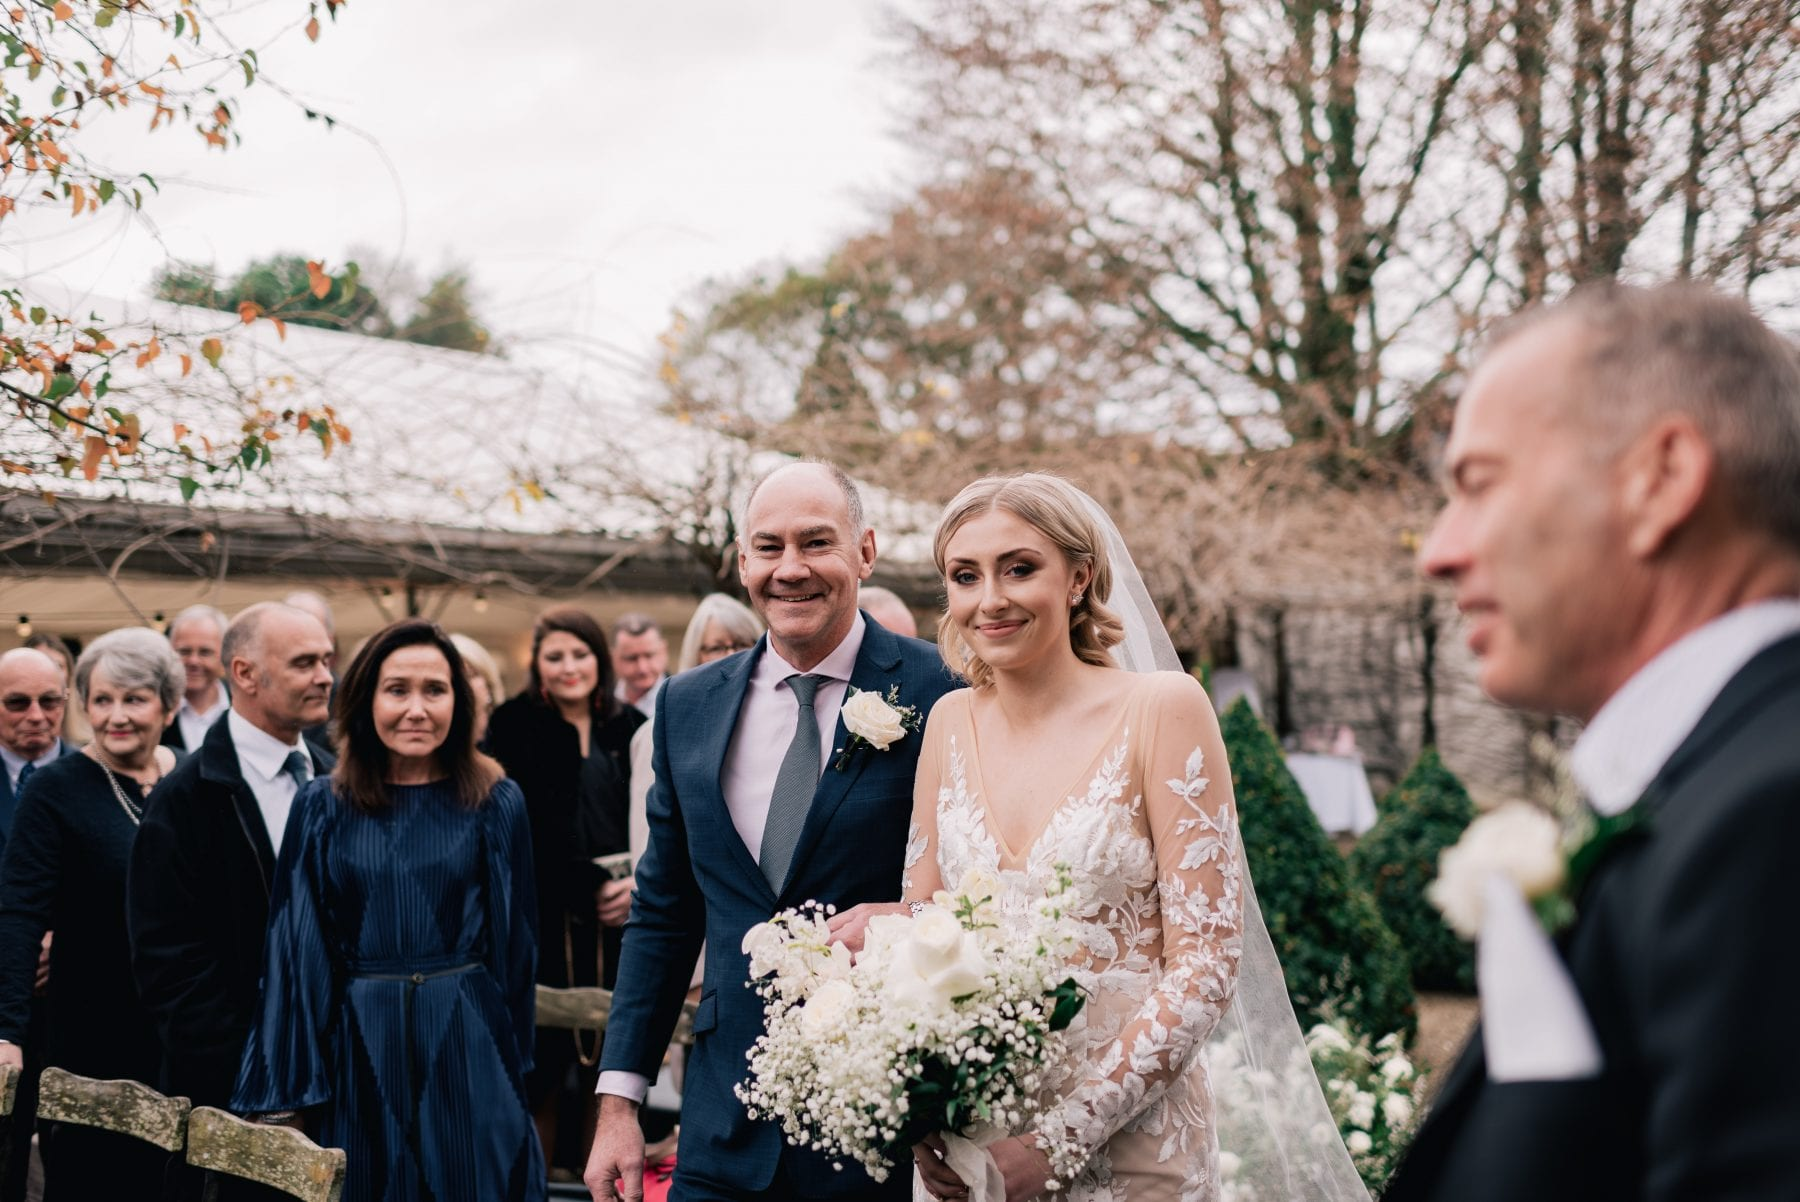 On My Hand Florist - Reuben and Hannah wedding - bride and groom at ceremony with bride holding beautiful white bouquet